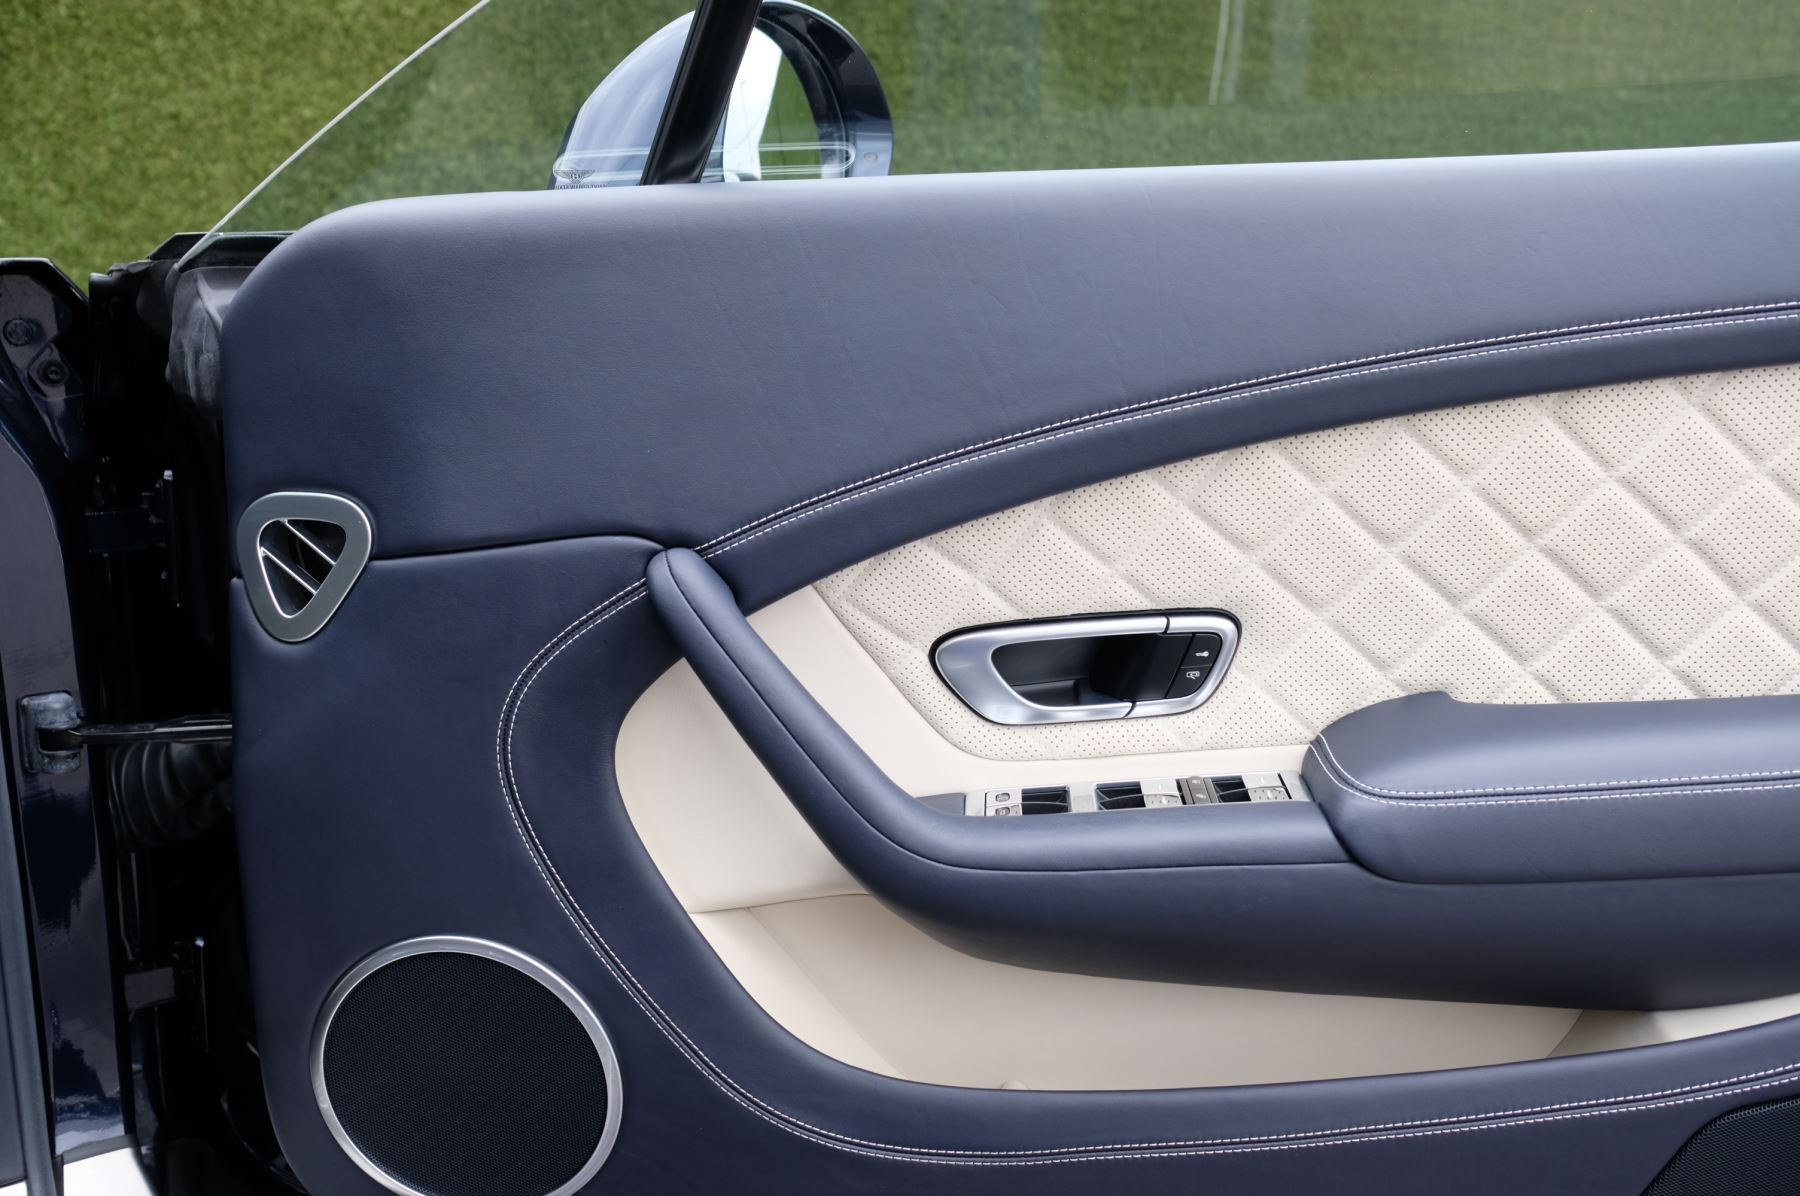 Bentley Continental GT 6.0 W12 [635] Speed - 21 inch Directional Sports Alloys - Ventilated Front Seats with Massage image 20